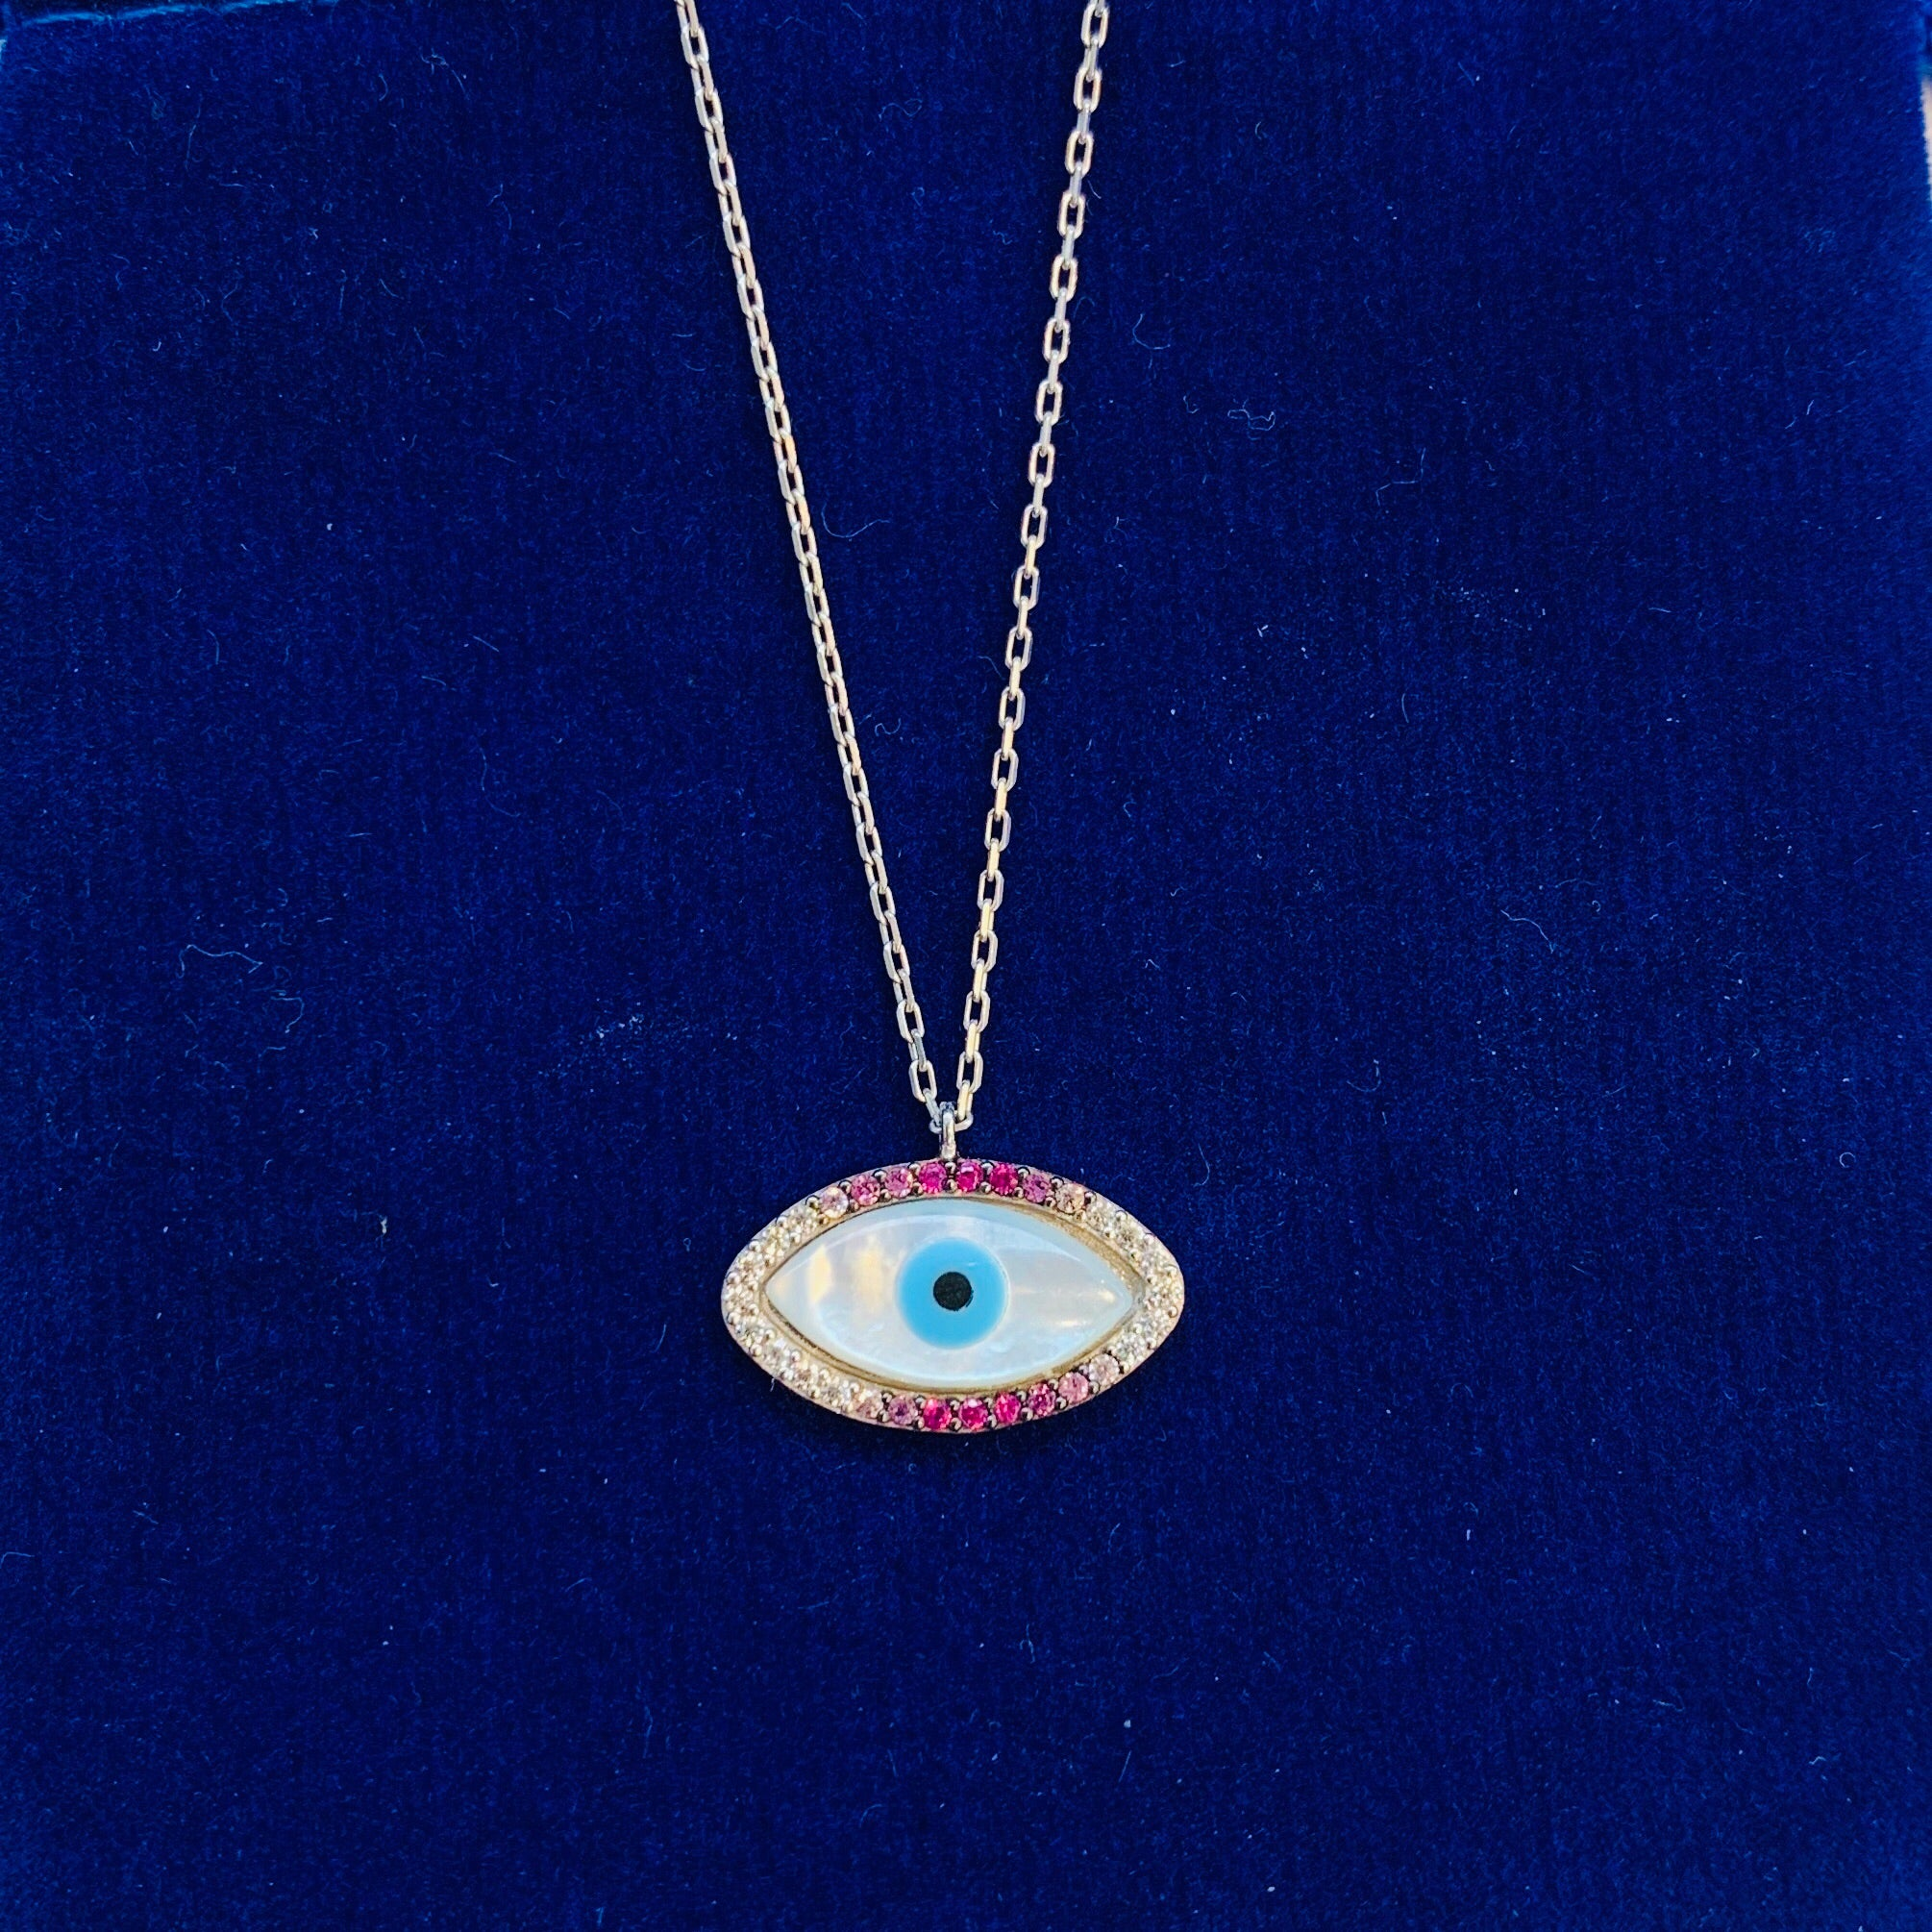 Handmade sterling silver eye shape Necklace